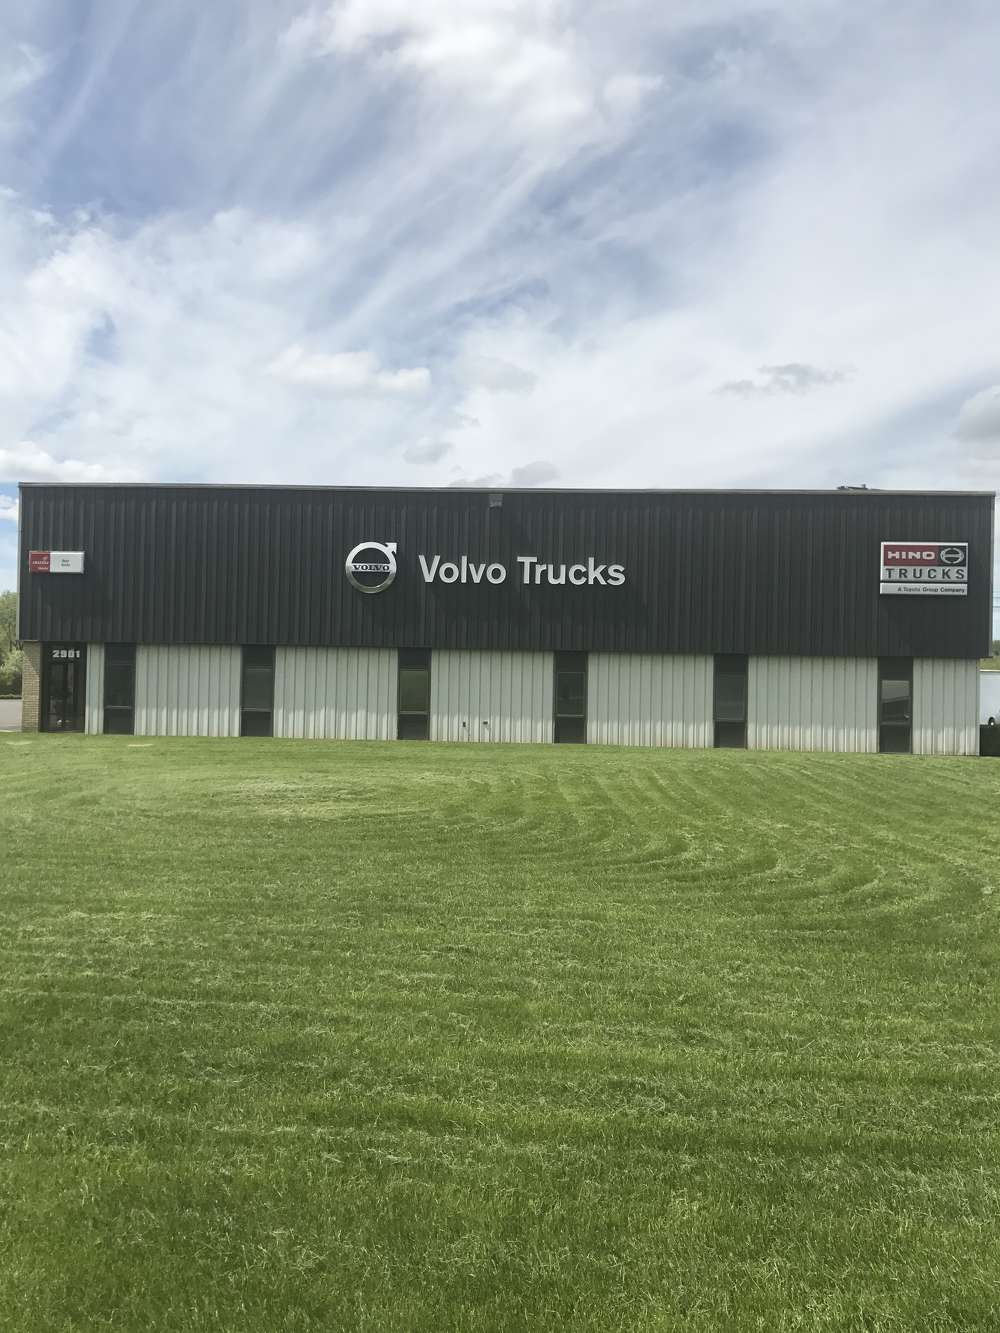 Burr Truck is one of the oldest family-owned Volvo Truck dealerships in the country.